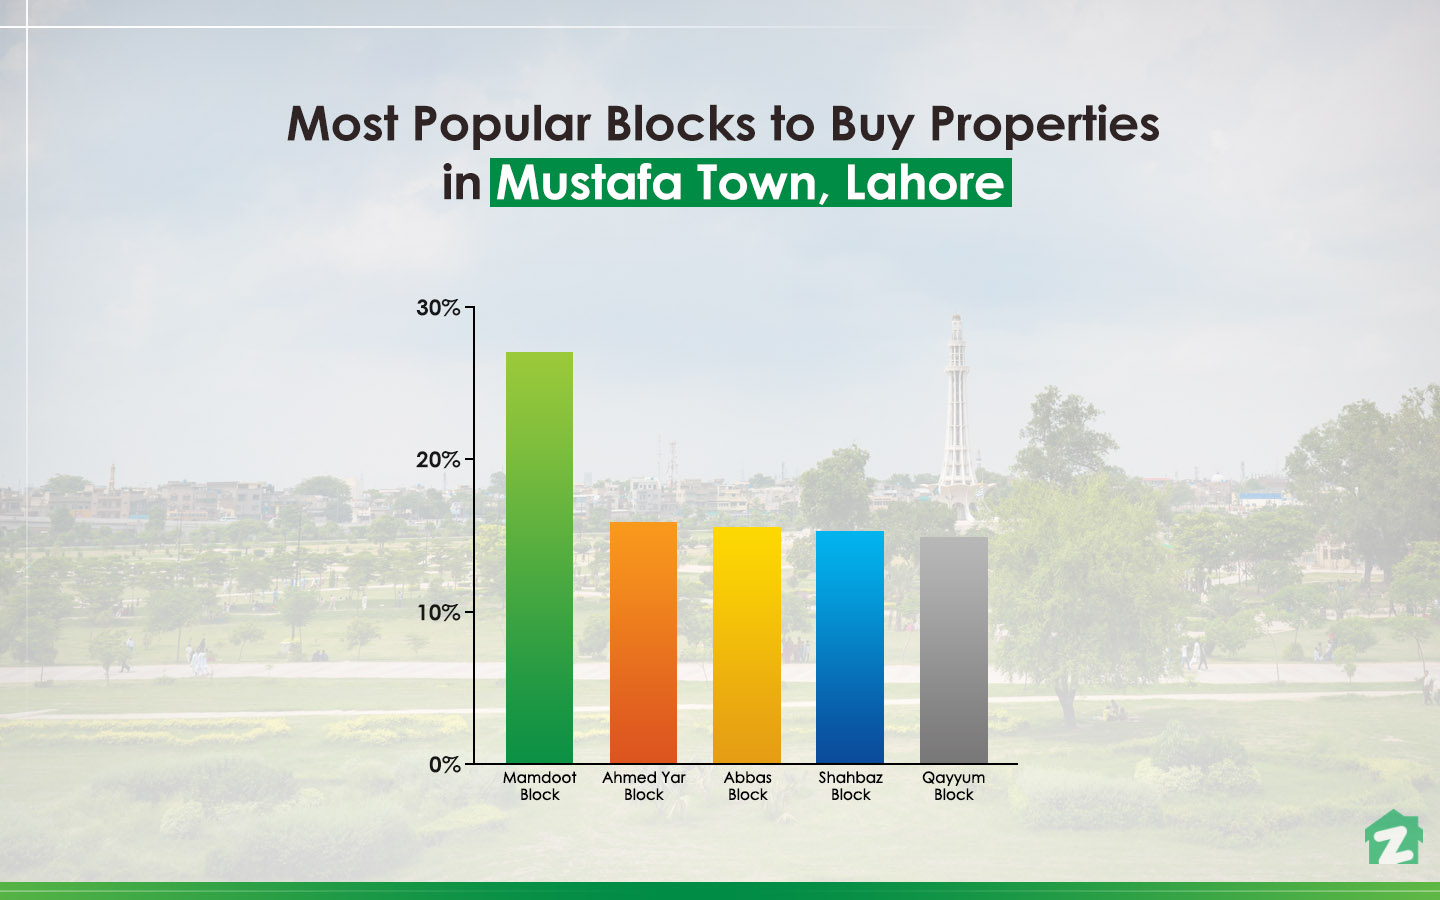 Infographic for Most Popular Blocks in Mustafa Town, Lahore